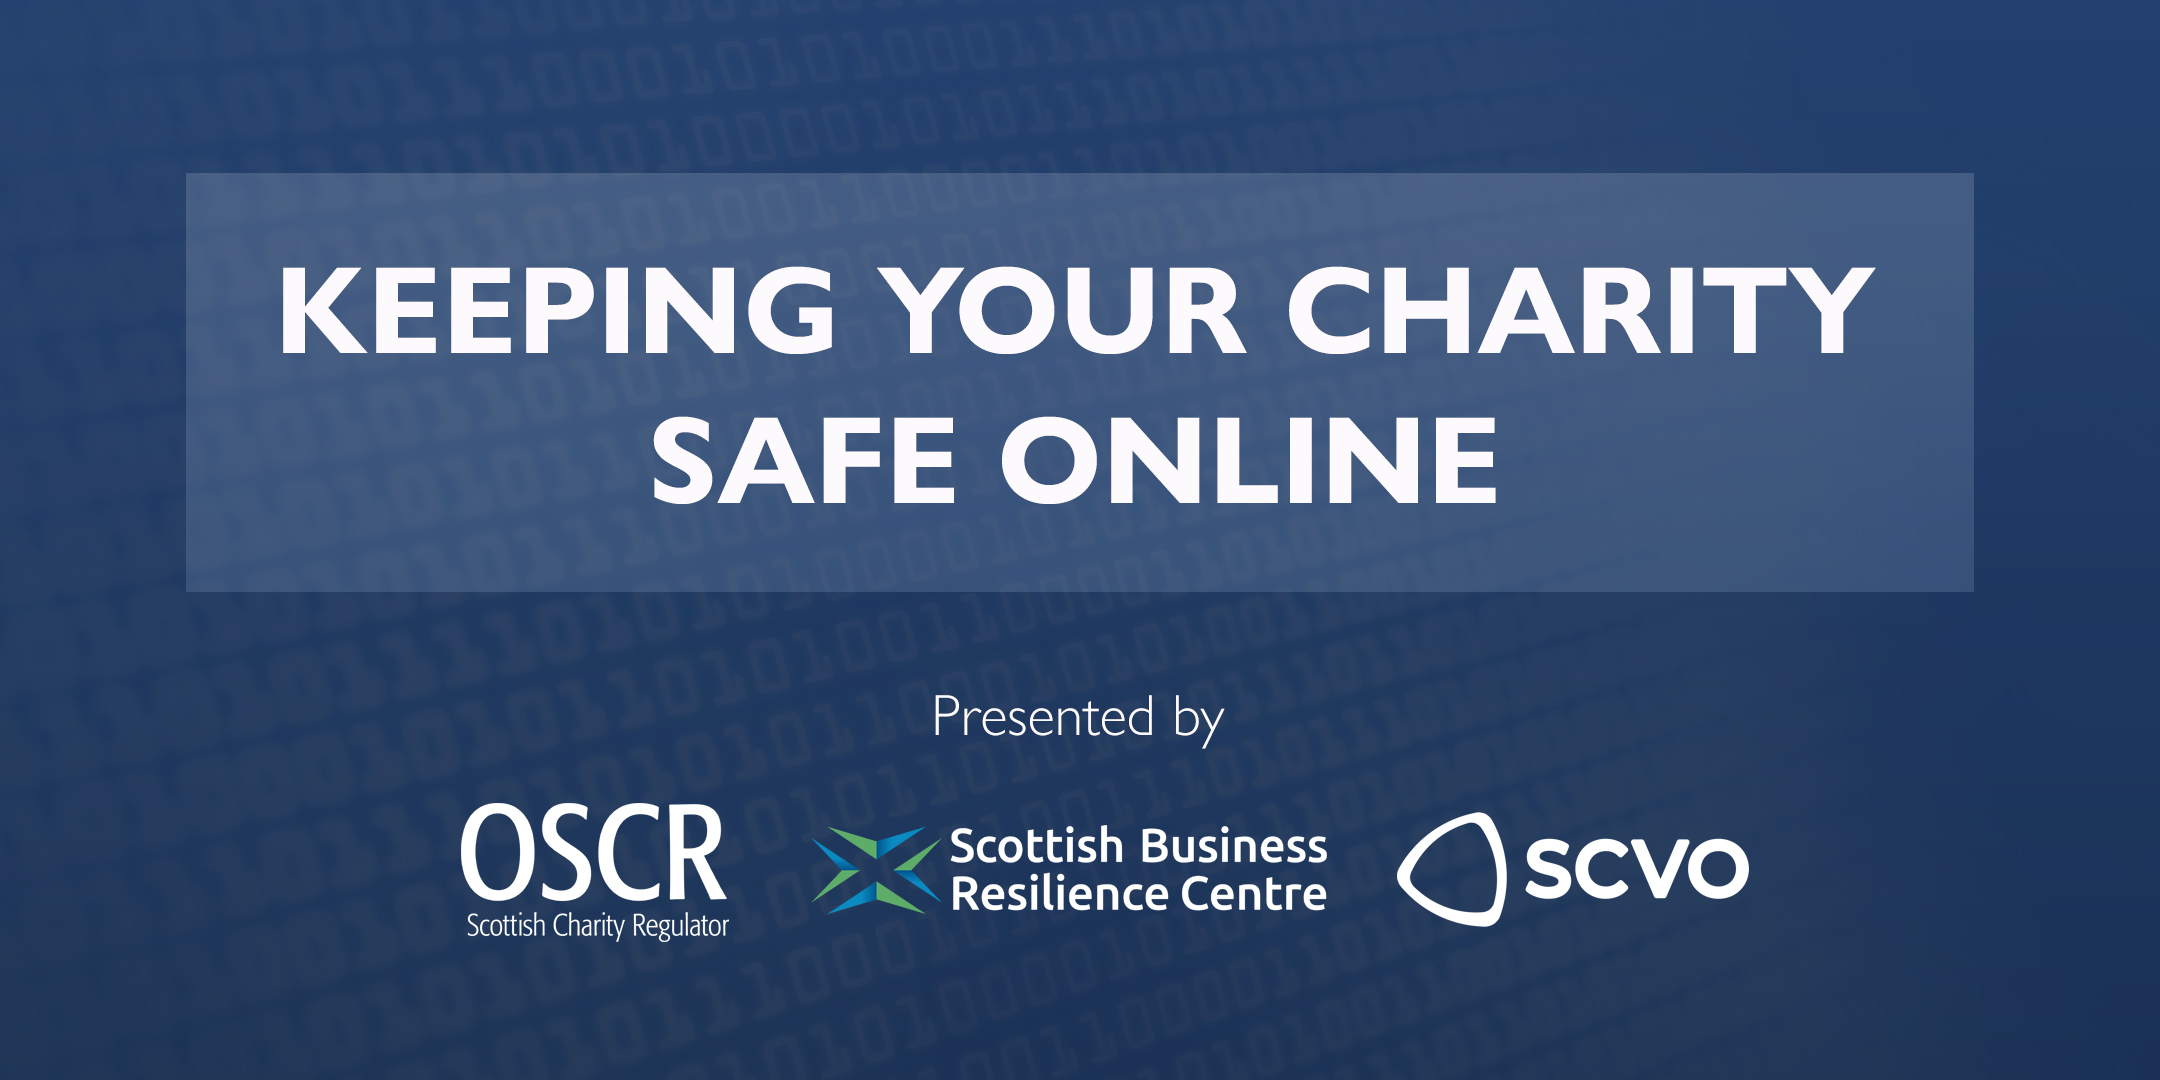 Video: Keeping your charity safe online webinar